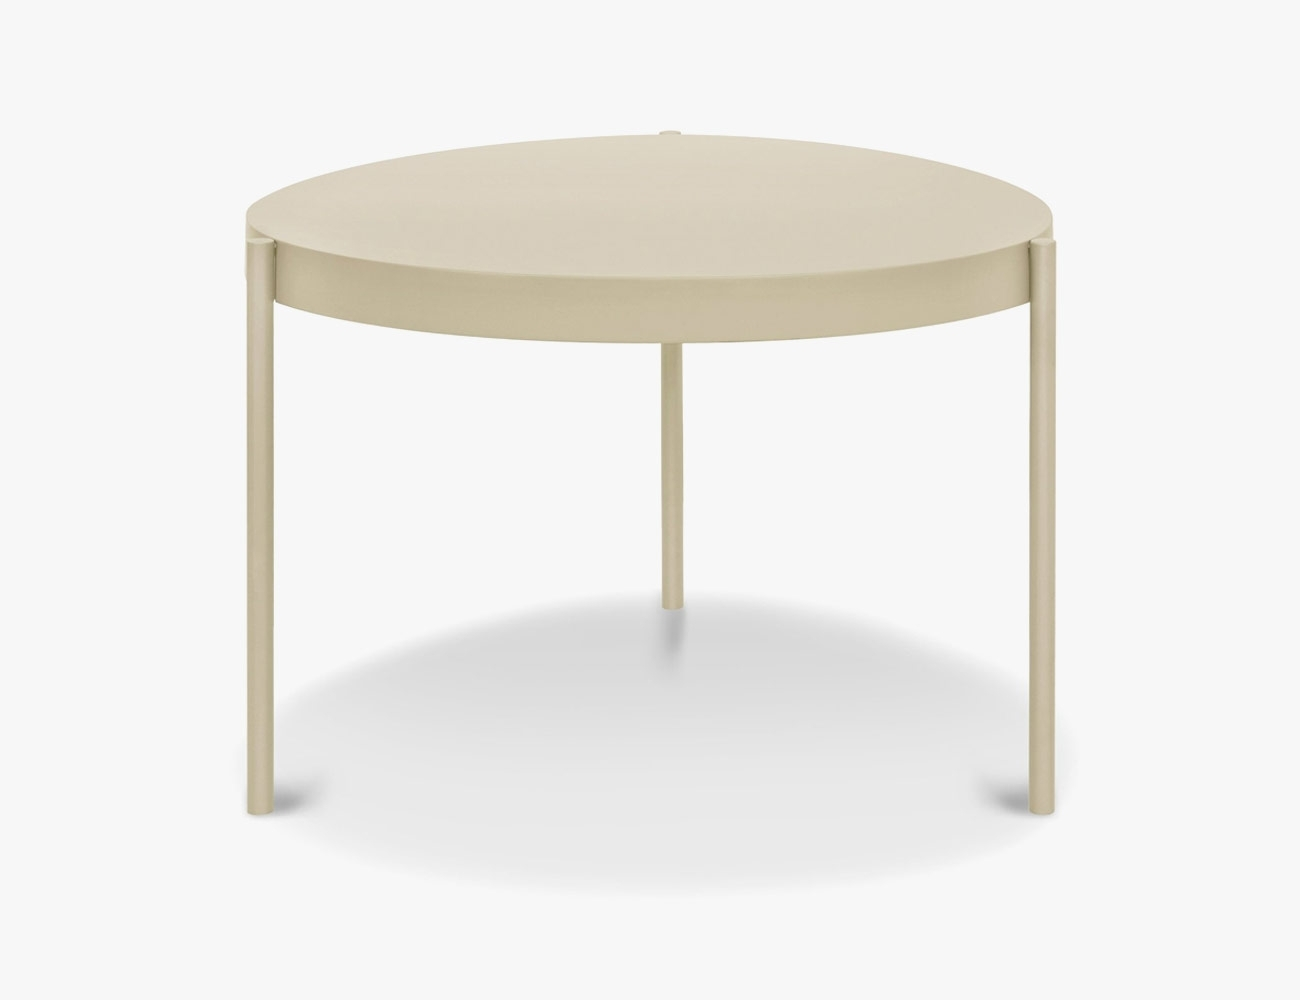 The Best Coffee Tables For Every Budget And Style With Regard To Shroom Large Coffee Tables (View 27 of 30)